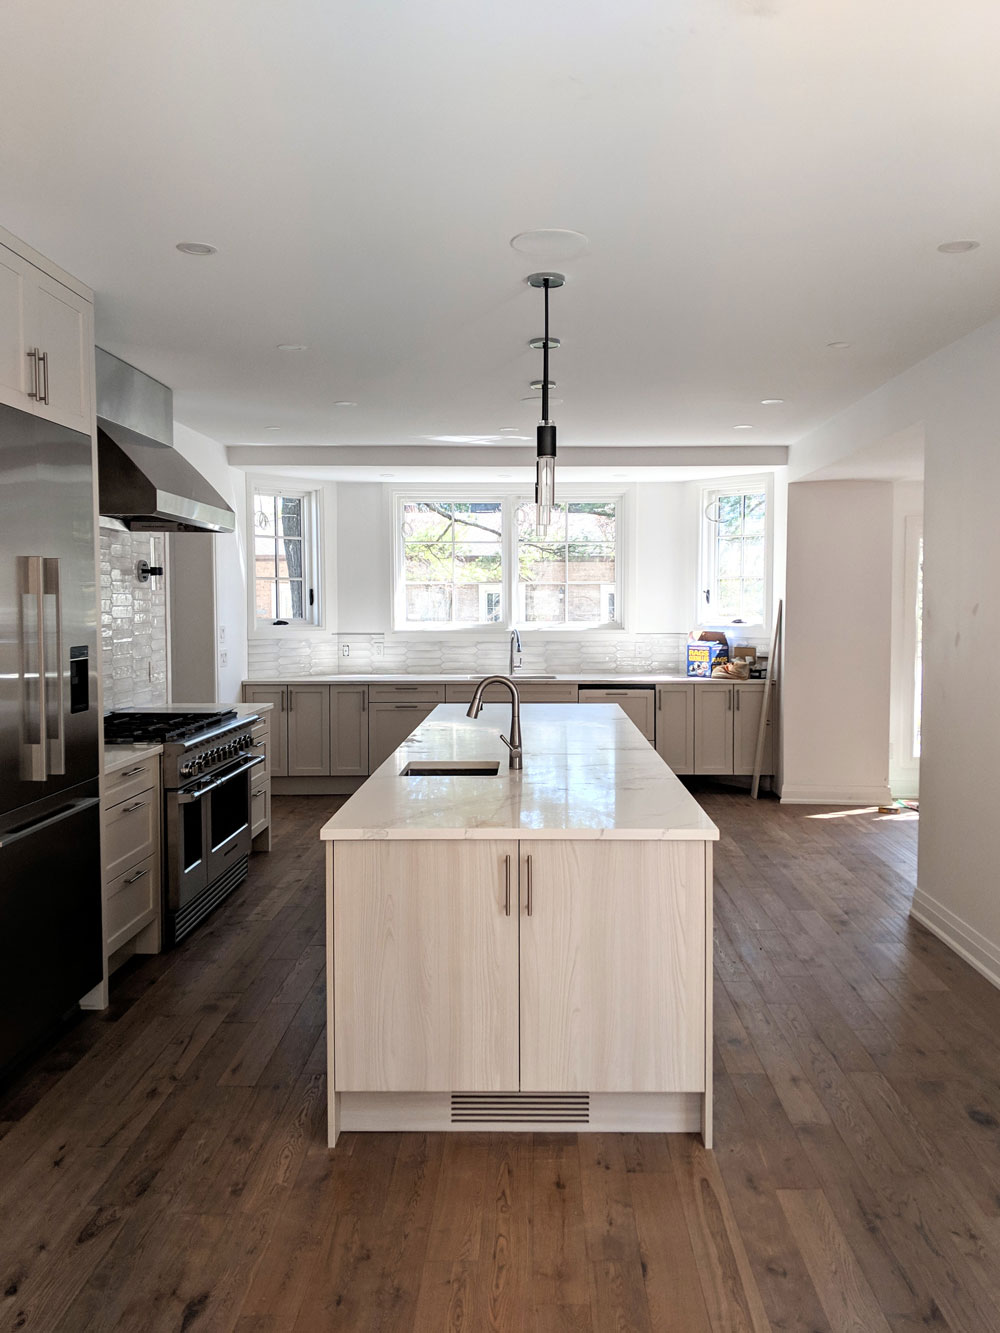 Photo of a modern light-coloured kitchen with a wooden floor with a beautiful center isle